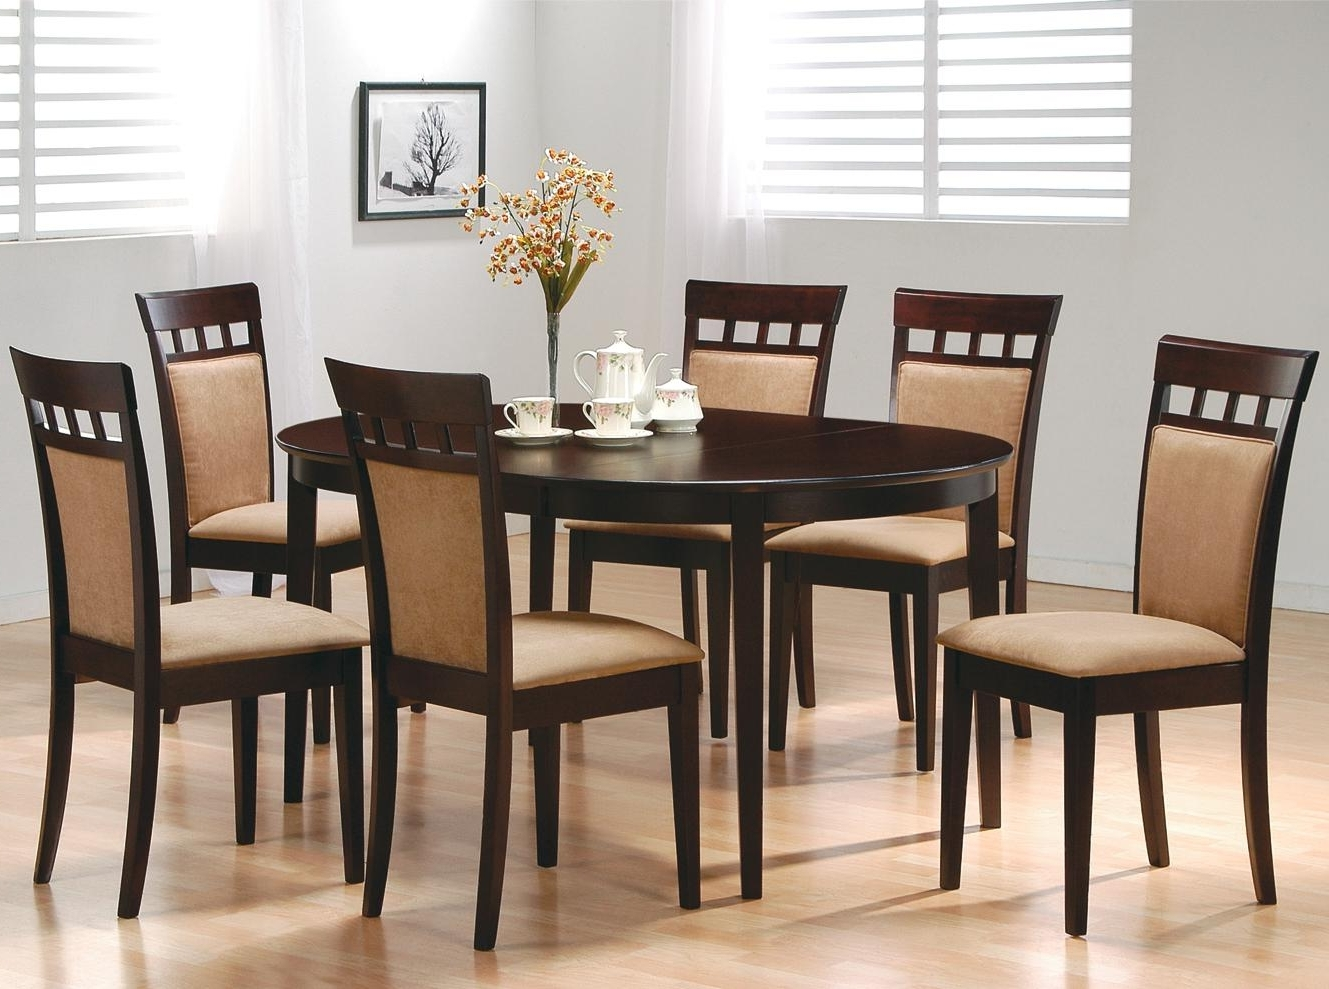 Dunk & Bright Furniture Inside Dark Wood Dining Tables 6 Chairs (Gallery 4 of 25)